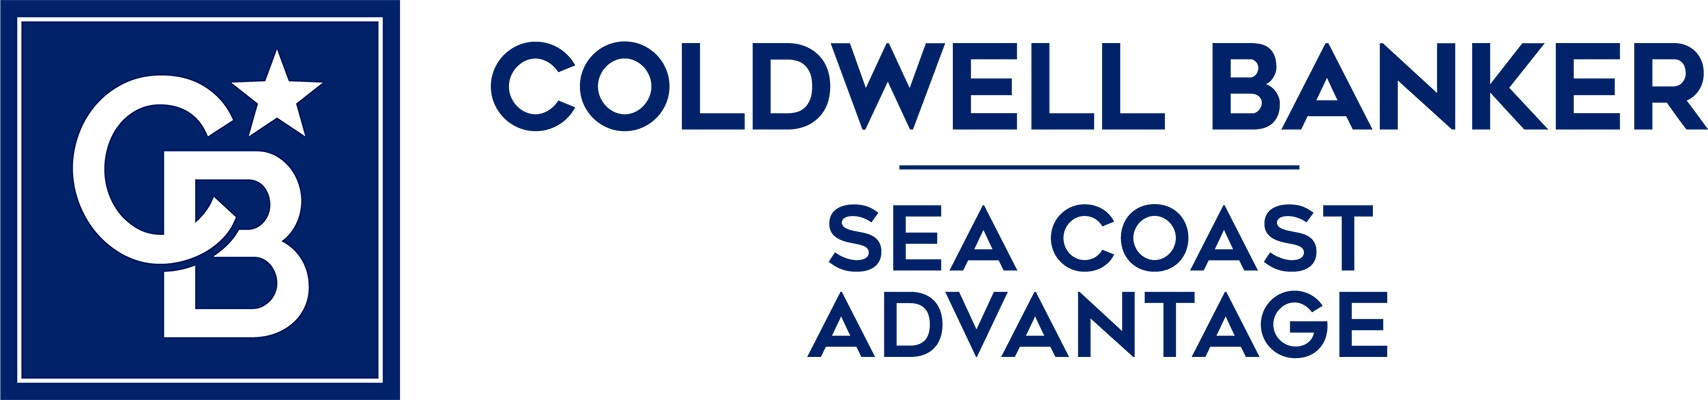 Linda Liederbach - Coldwell Banker Sea Coast Advantage Realty Logo